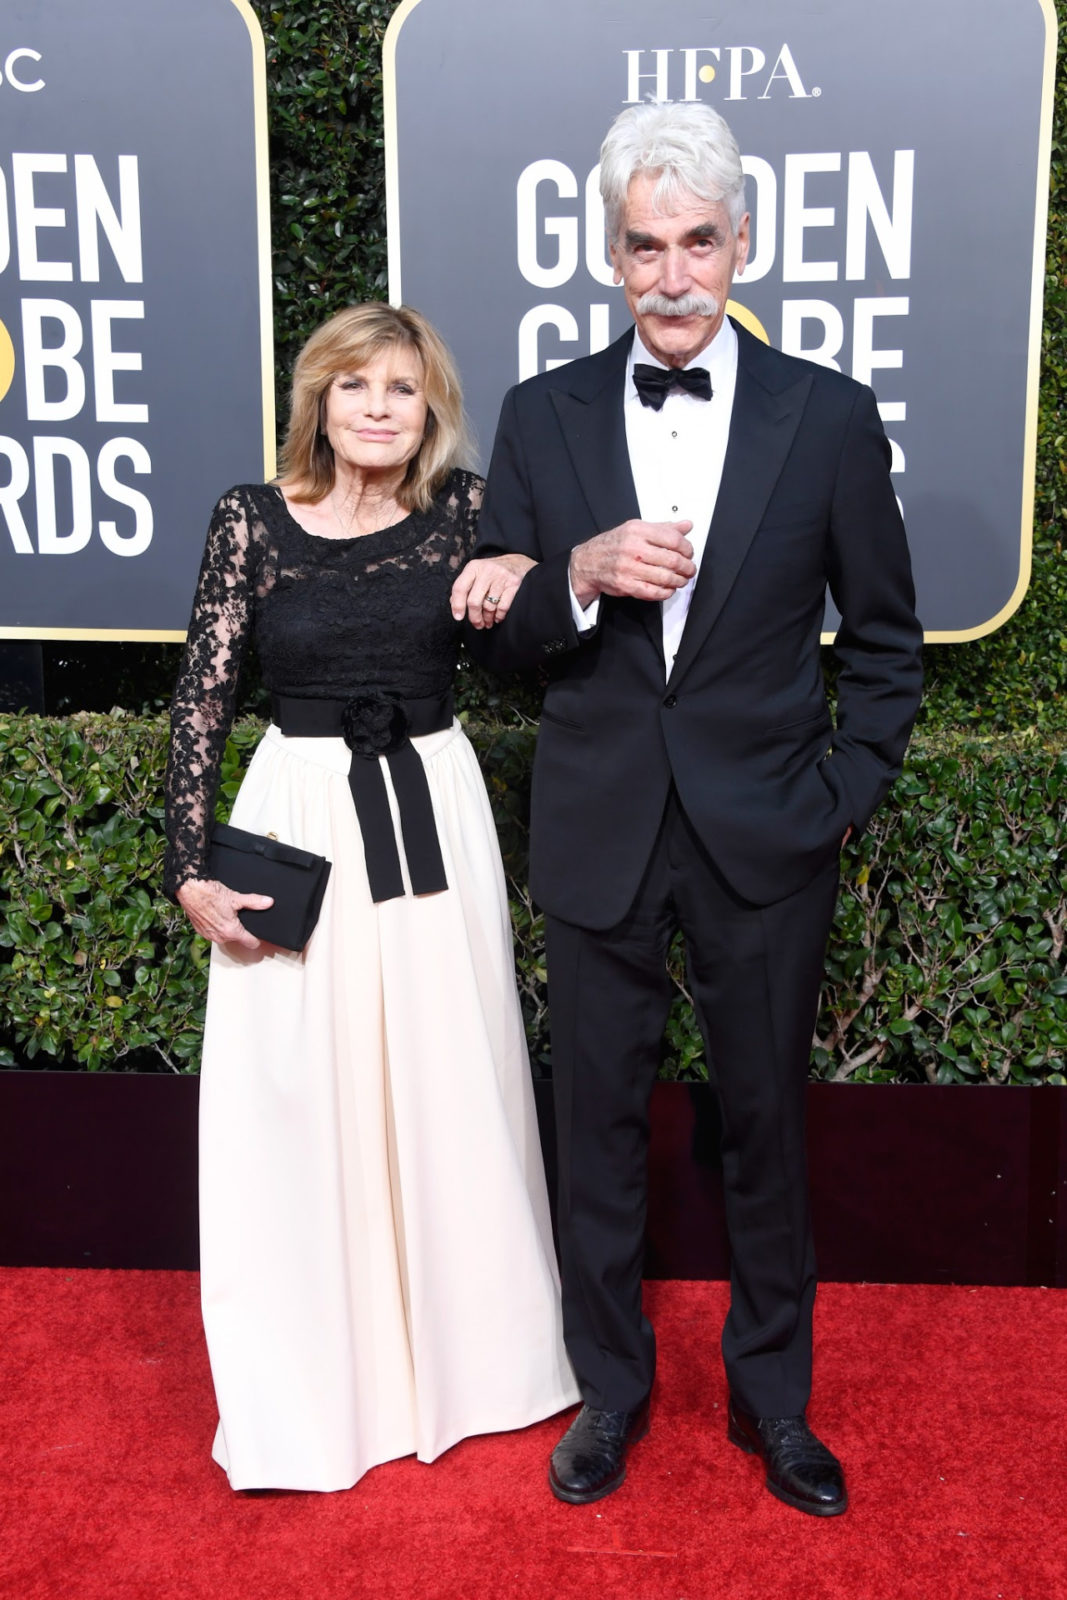 Sam Elliott pictured alongside his wife of 35 years Katharine Ross. Source: Getty